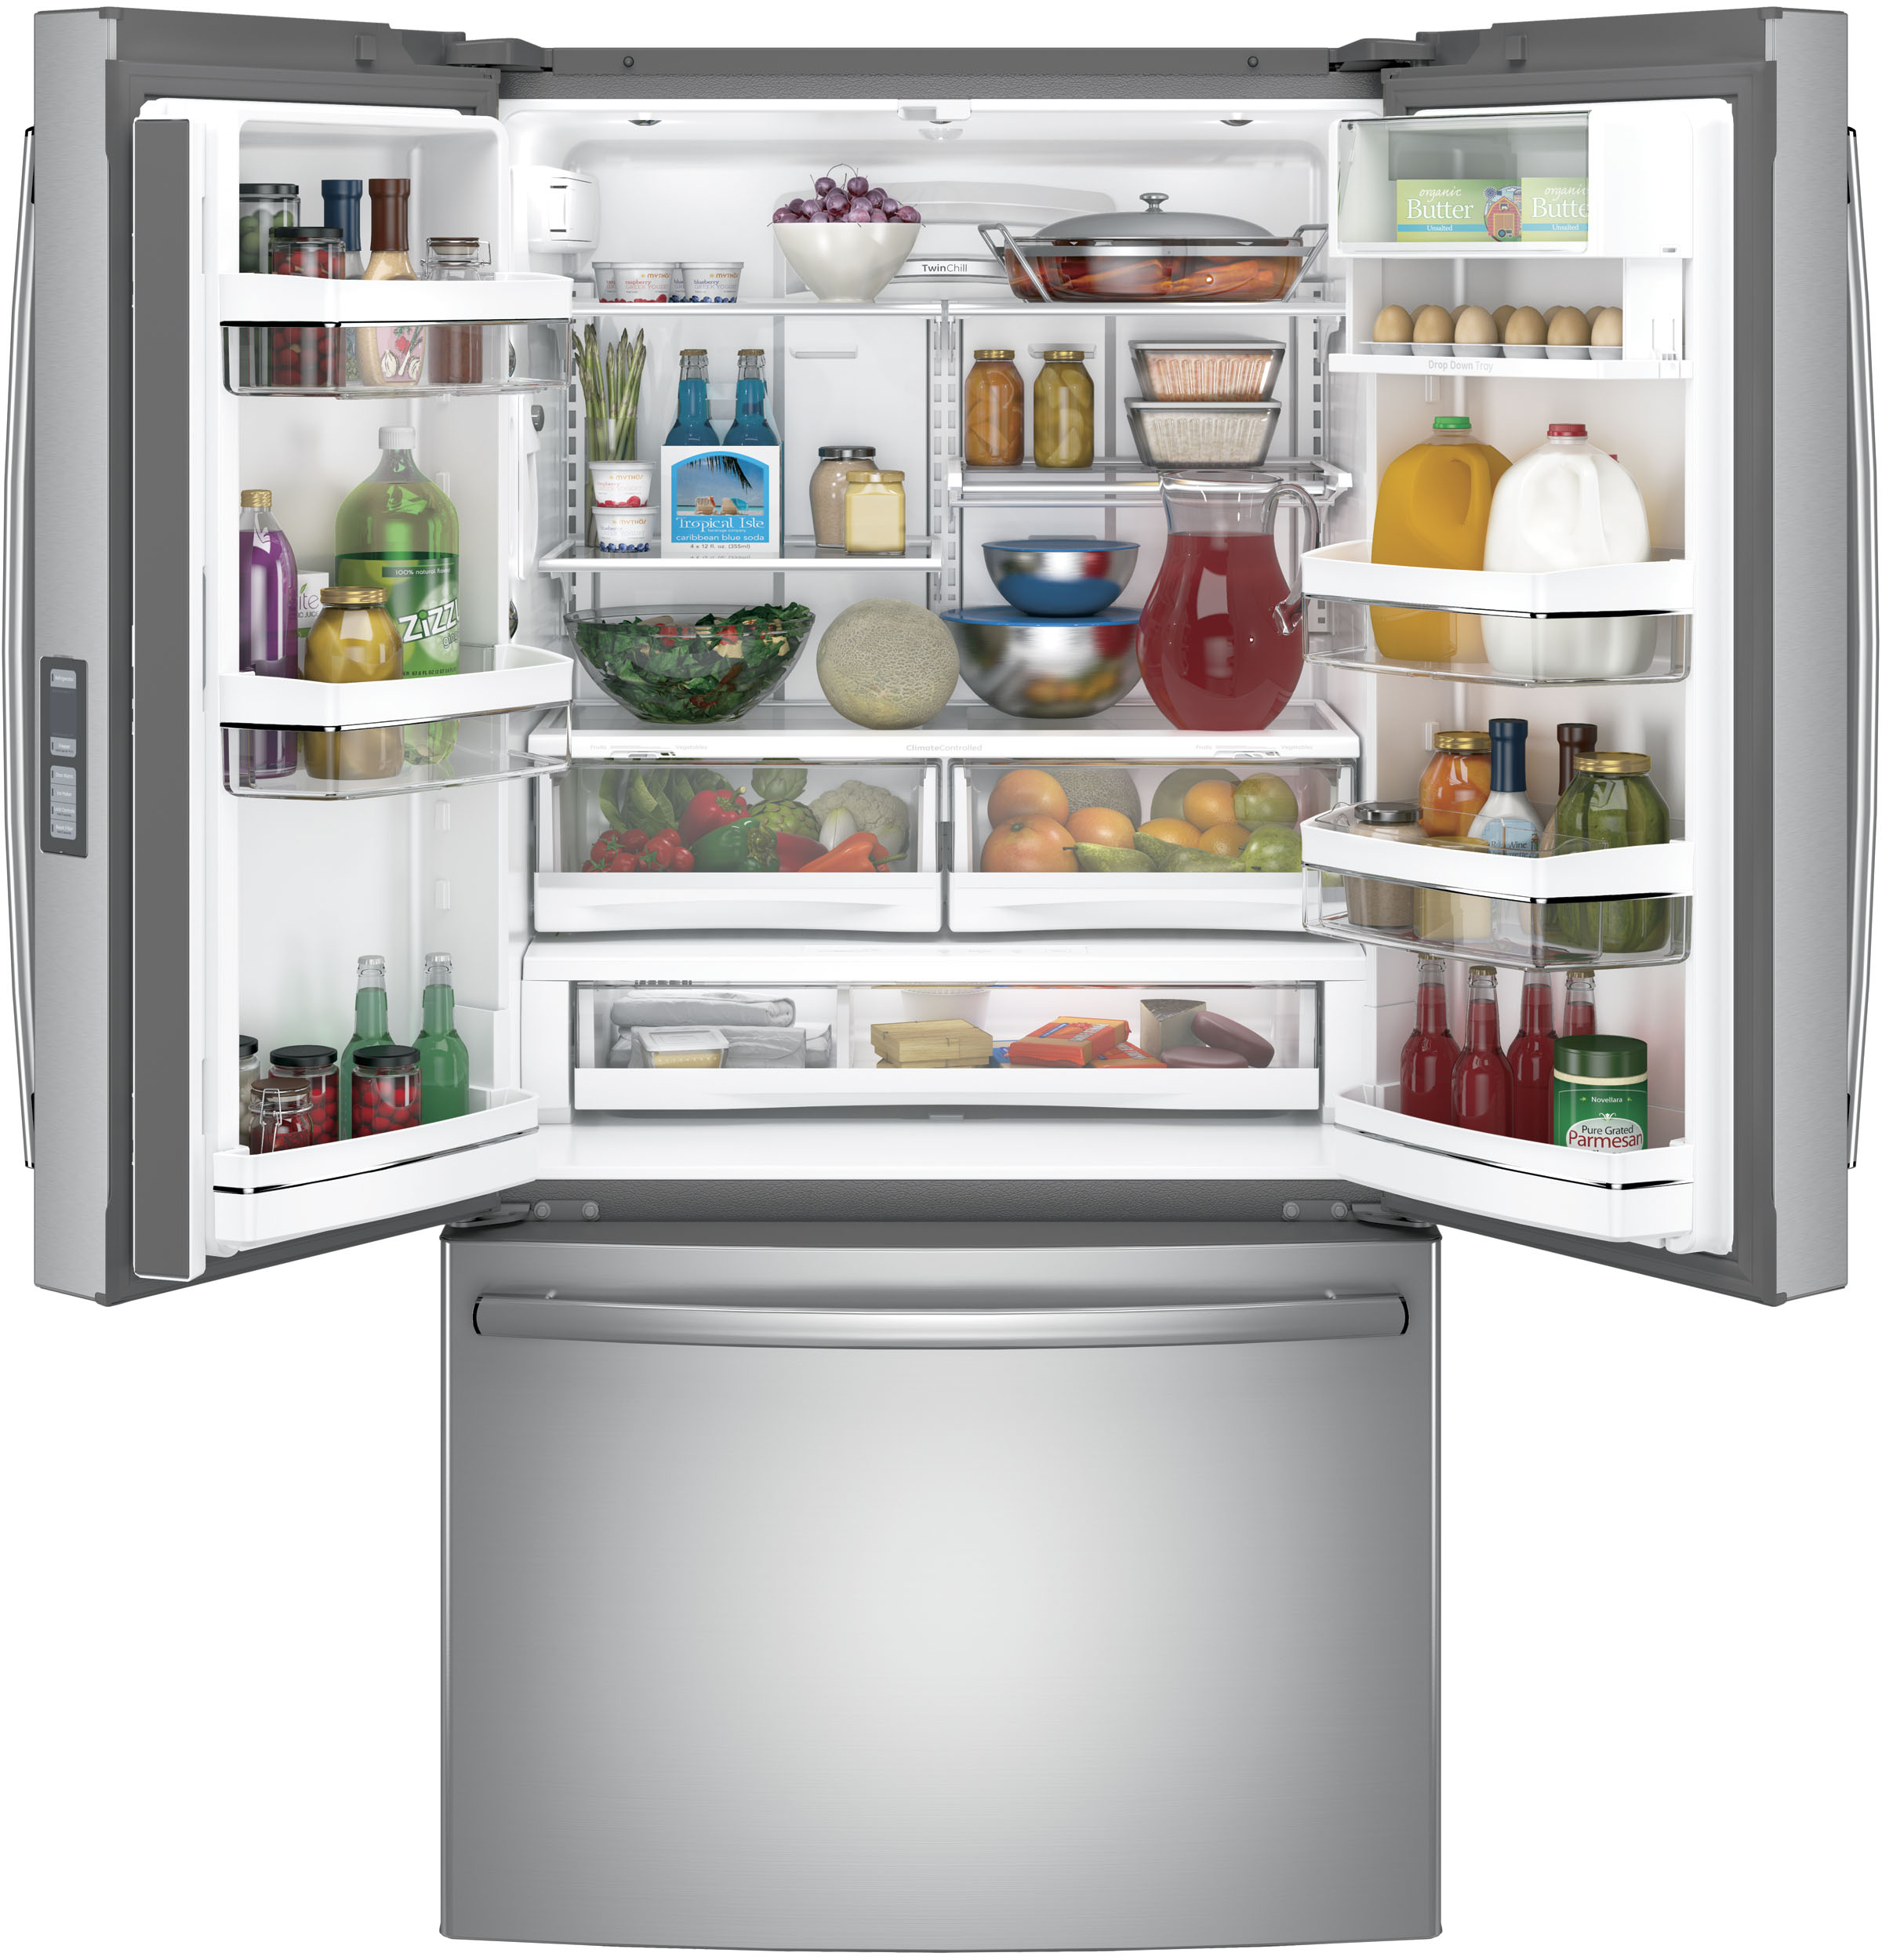 Best Counter Depth Refrigerator 2015 >> Ge Profile Series Energy Star 23 1 Cu Ft Counter Depth